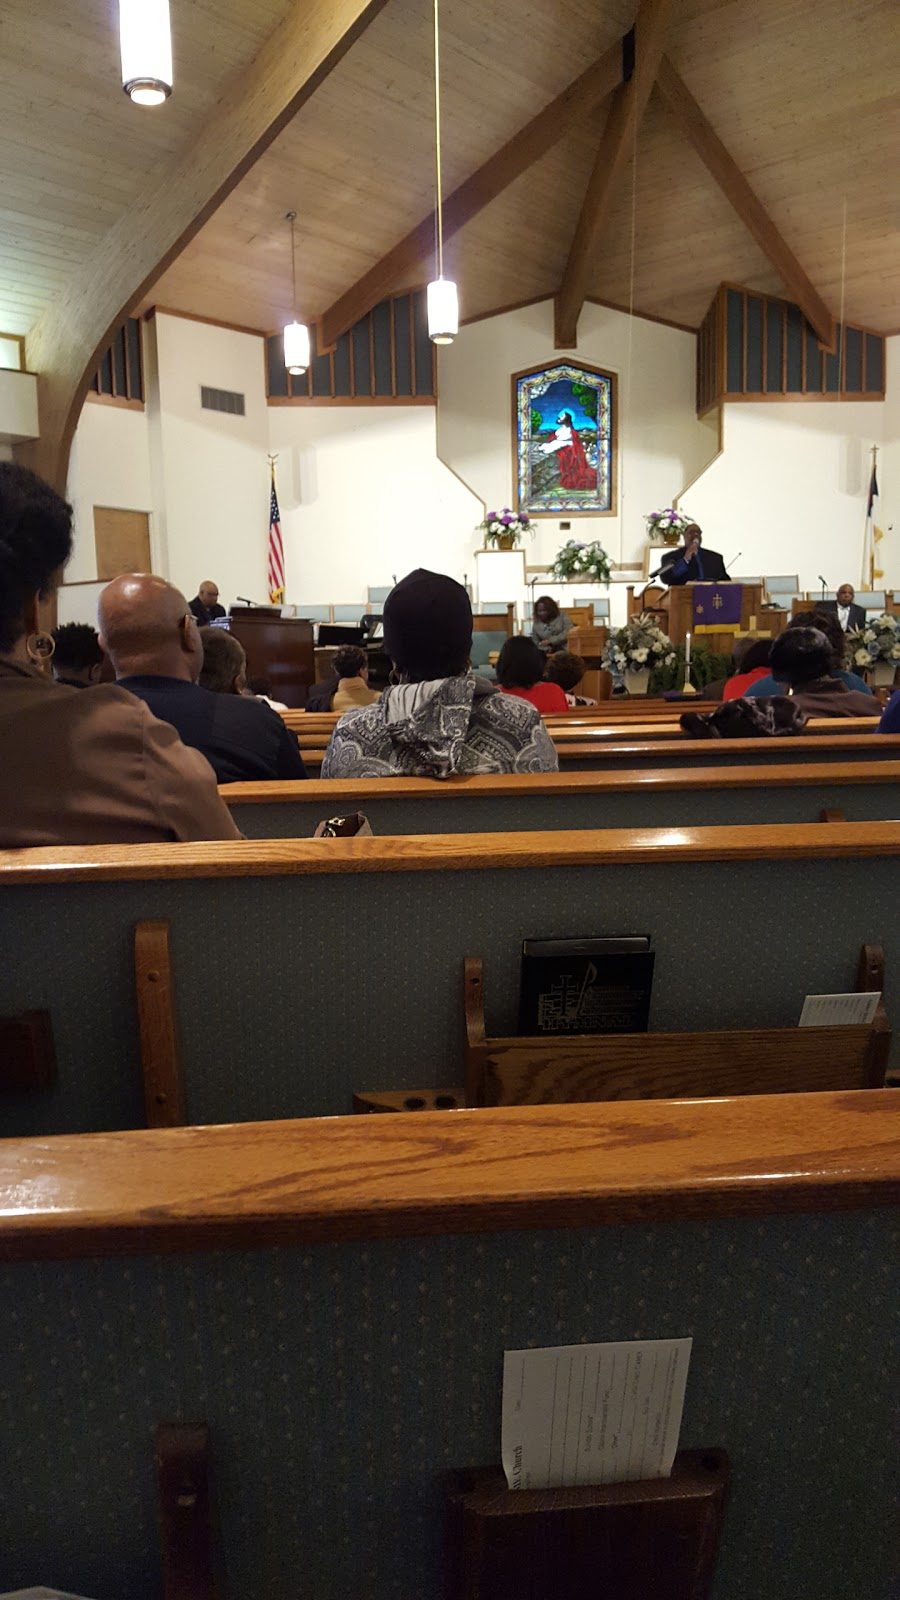 Greater Bethel AME Church - church  | Photo 2 of 5 | Address: 5232 The Plaza, Charlotte, NC 28215, USA | Phone: (980) 949-6576